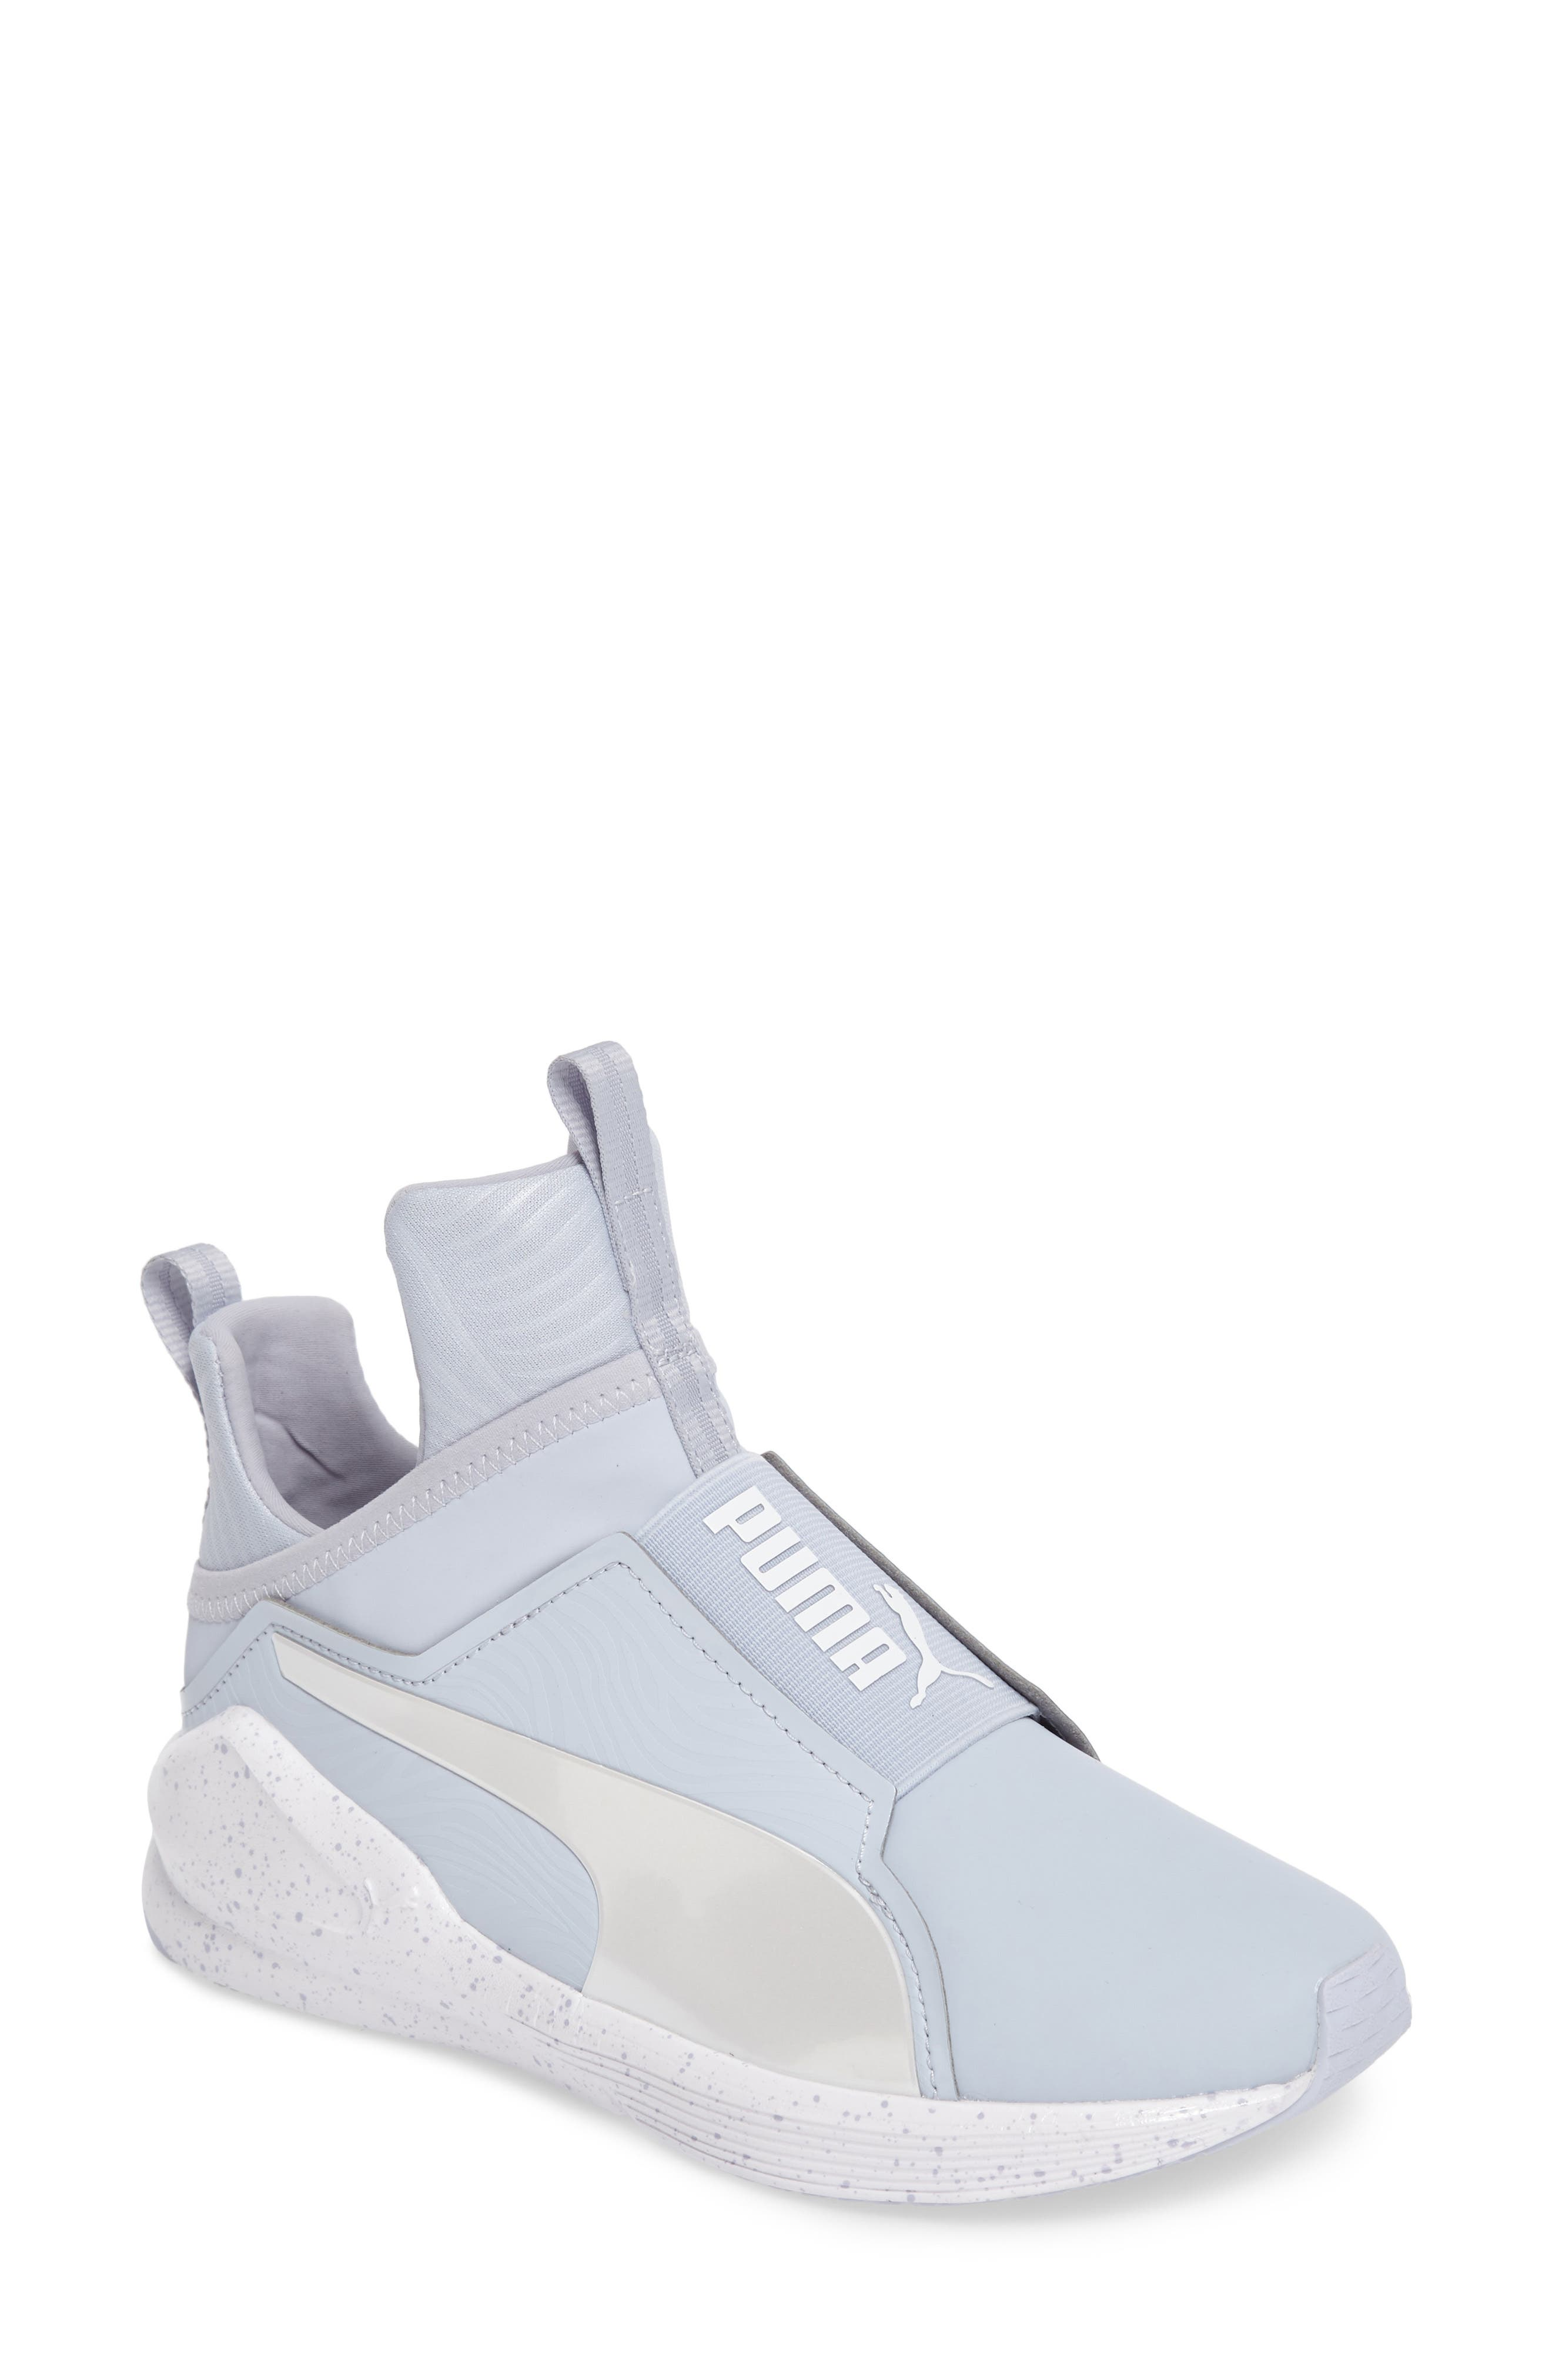 puma high tops womens. puma fierce bleached high top sneaker (women) puma tops womens w